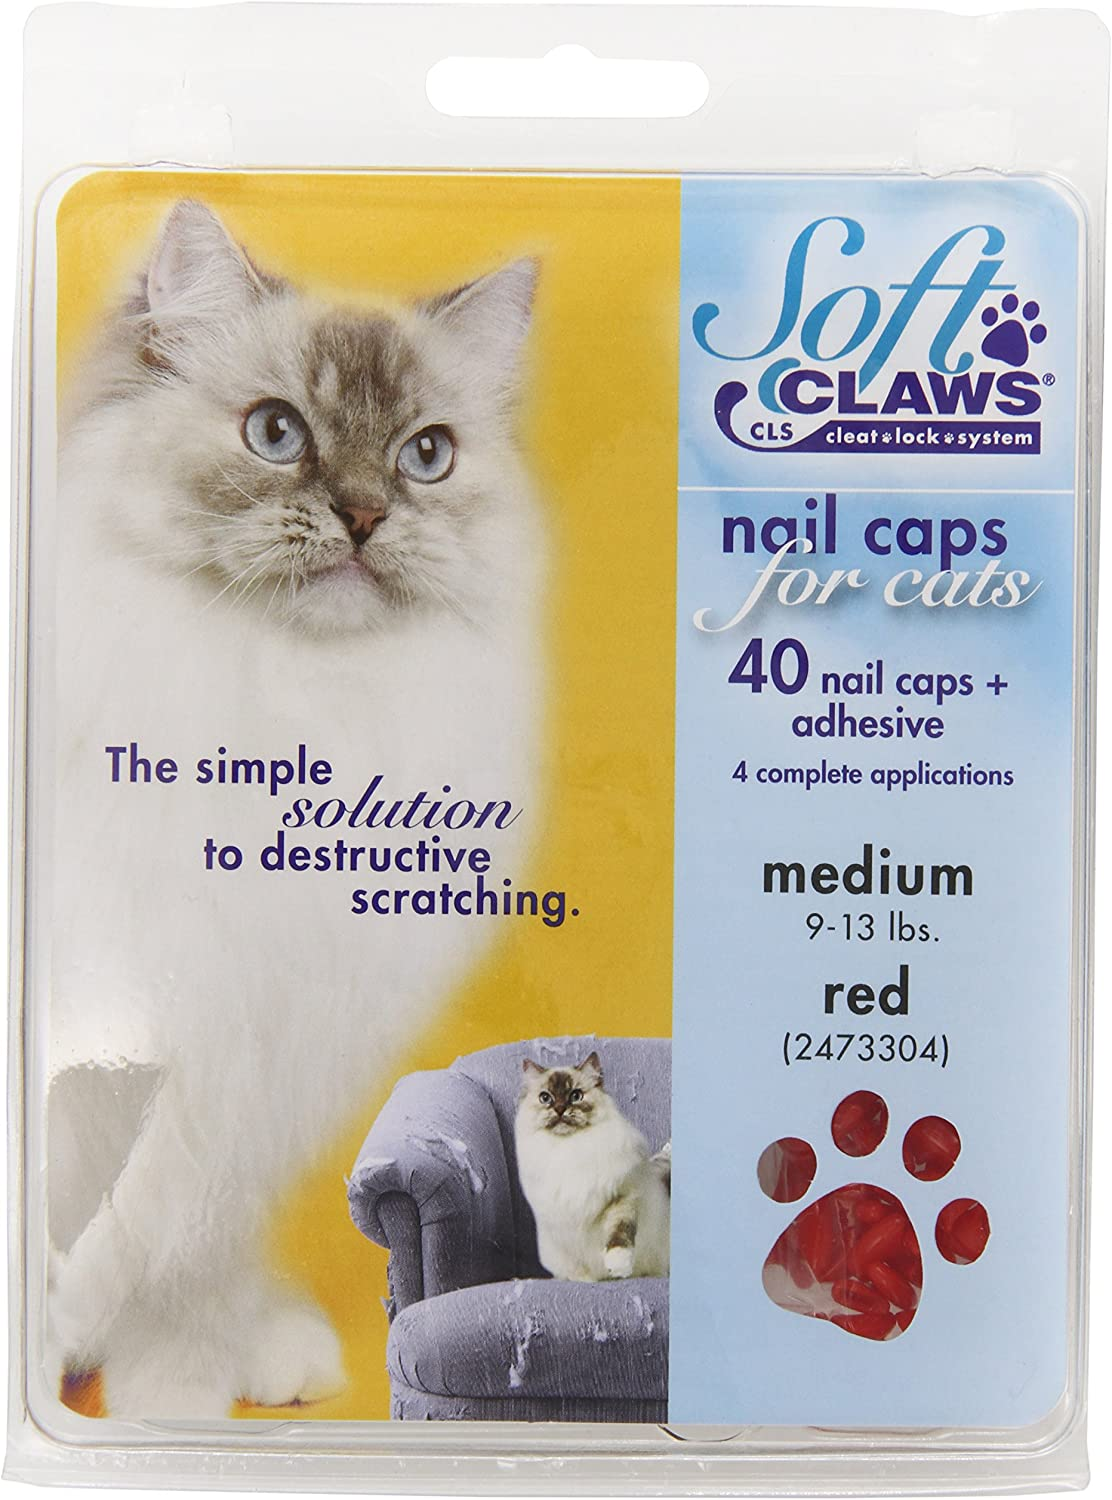 Soft Claws for Cats - CLS (Cleat Lock System), Size Medium, Color Red : Pet Nail Clippers : Pet Supplies